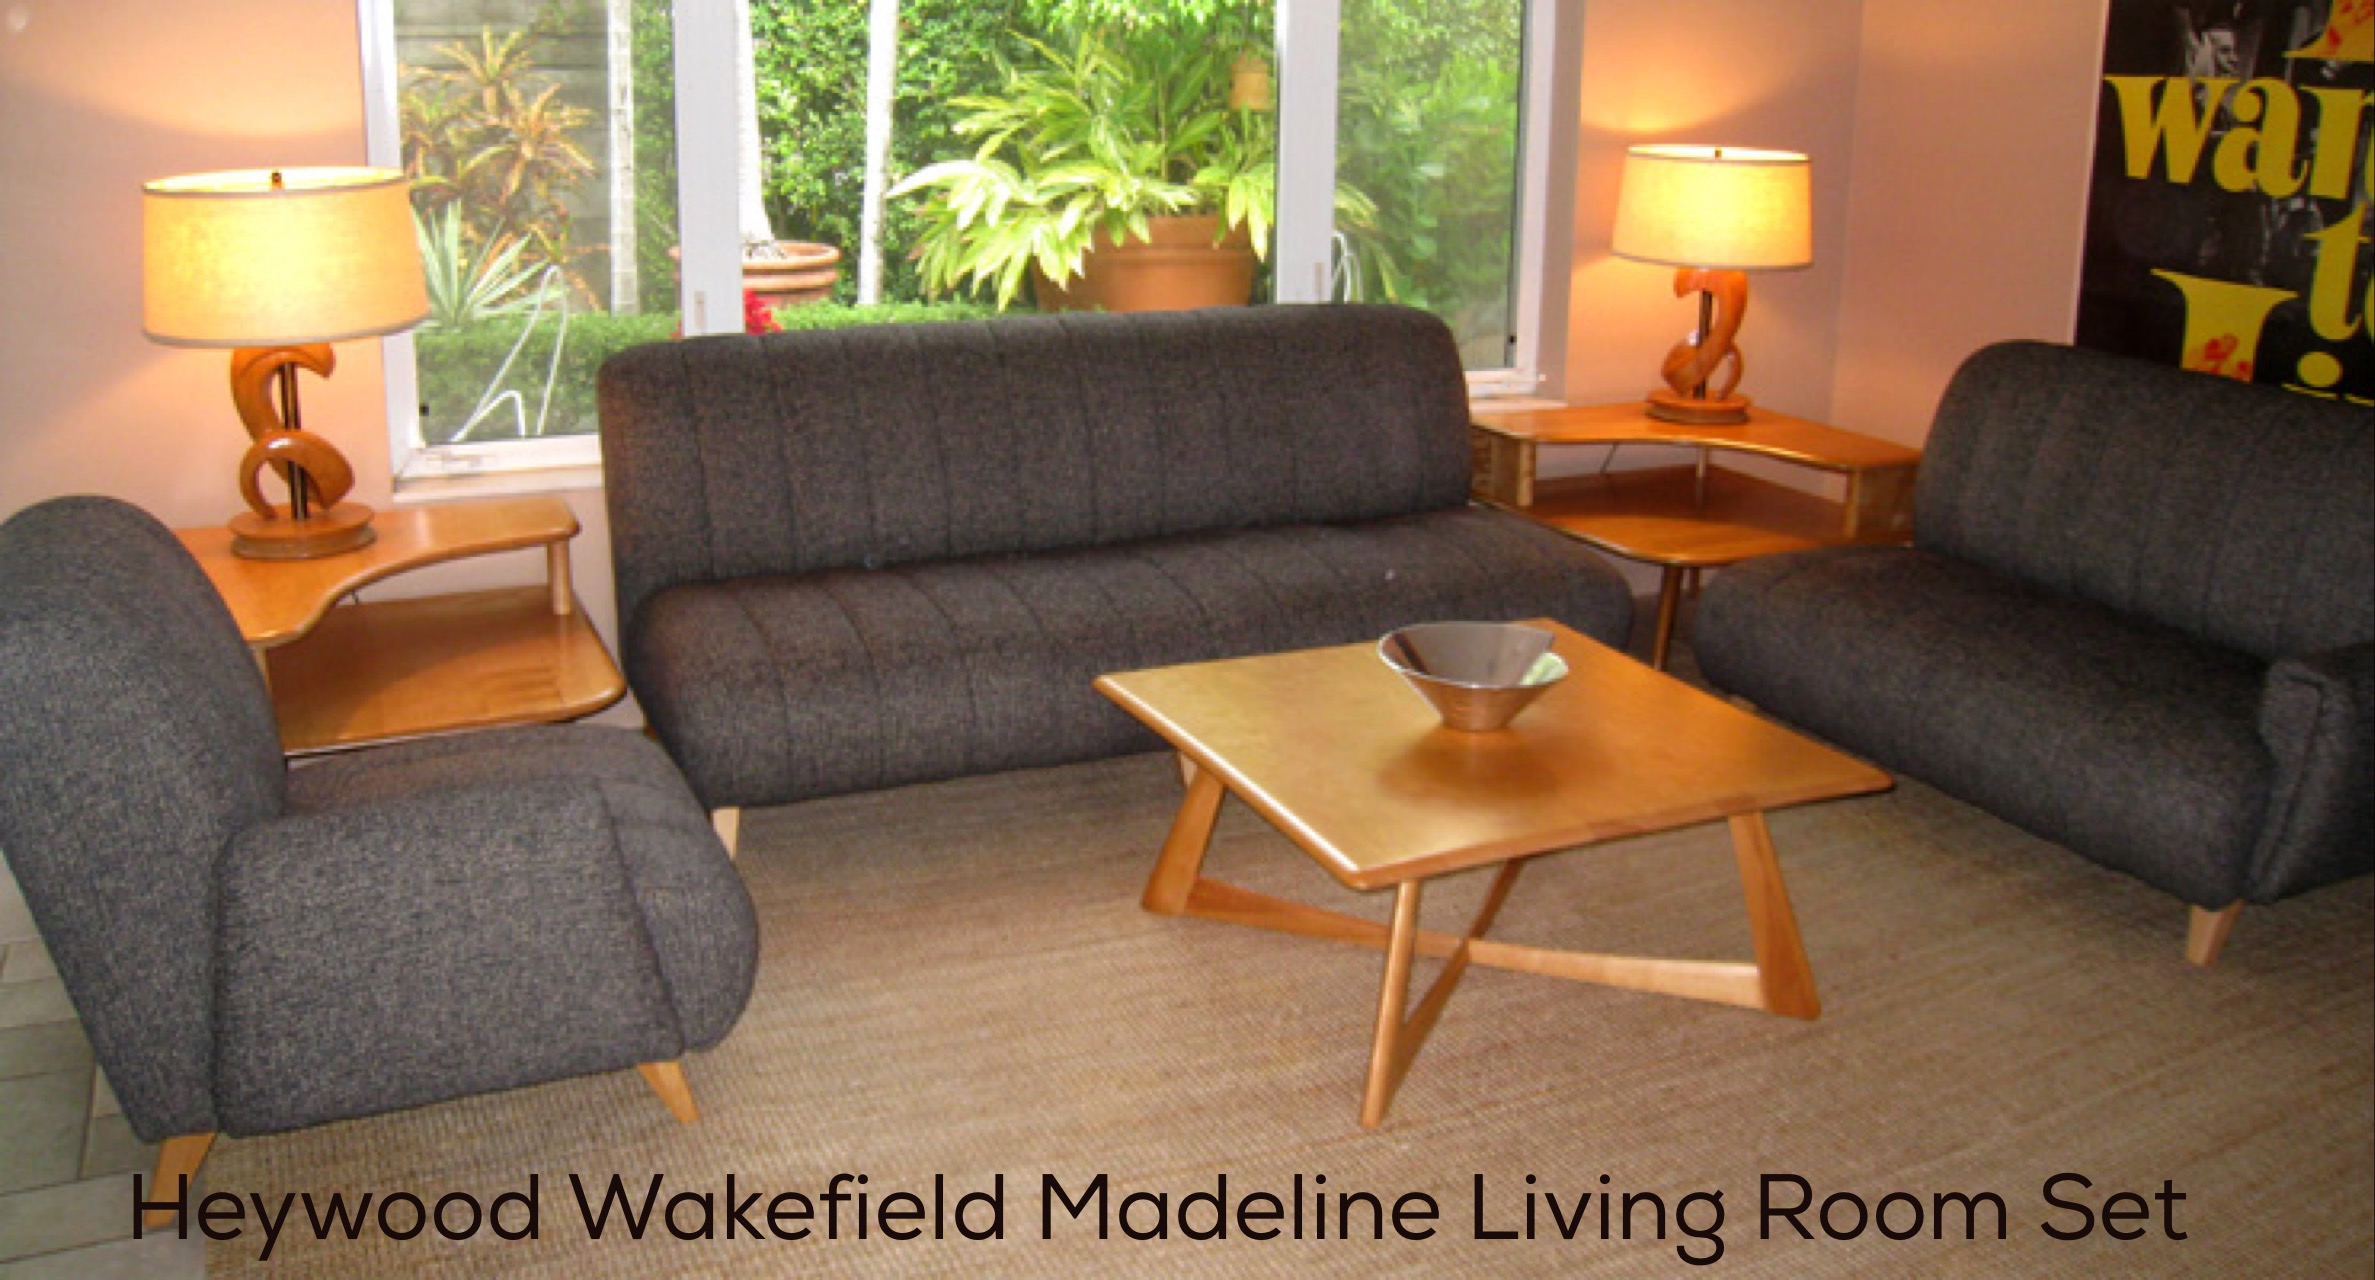 heywood wakefield vintage furniture Spotlight: Heywood Wakefield Modern Furniture   Mod Livin' Modern  heywood wakefield vintage furniture